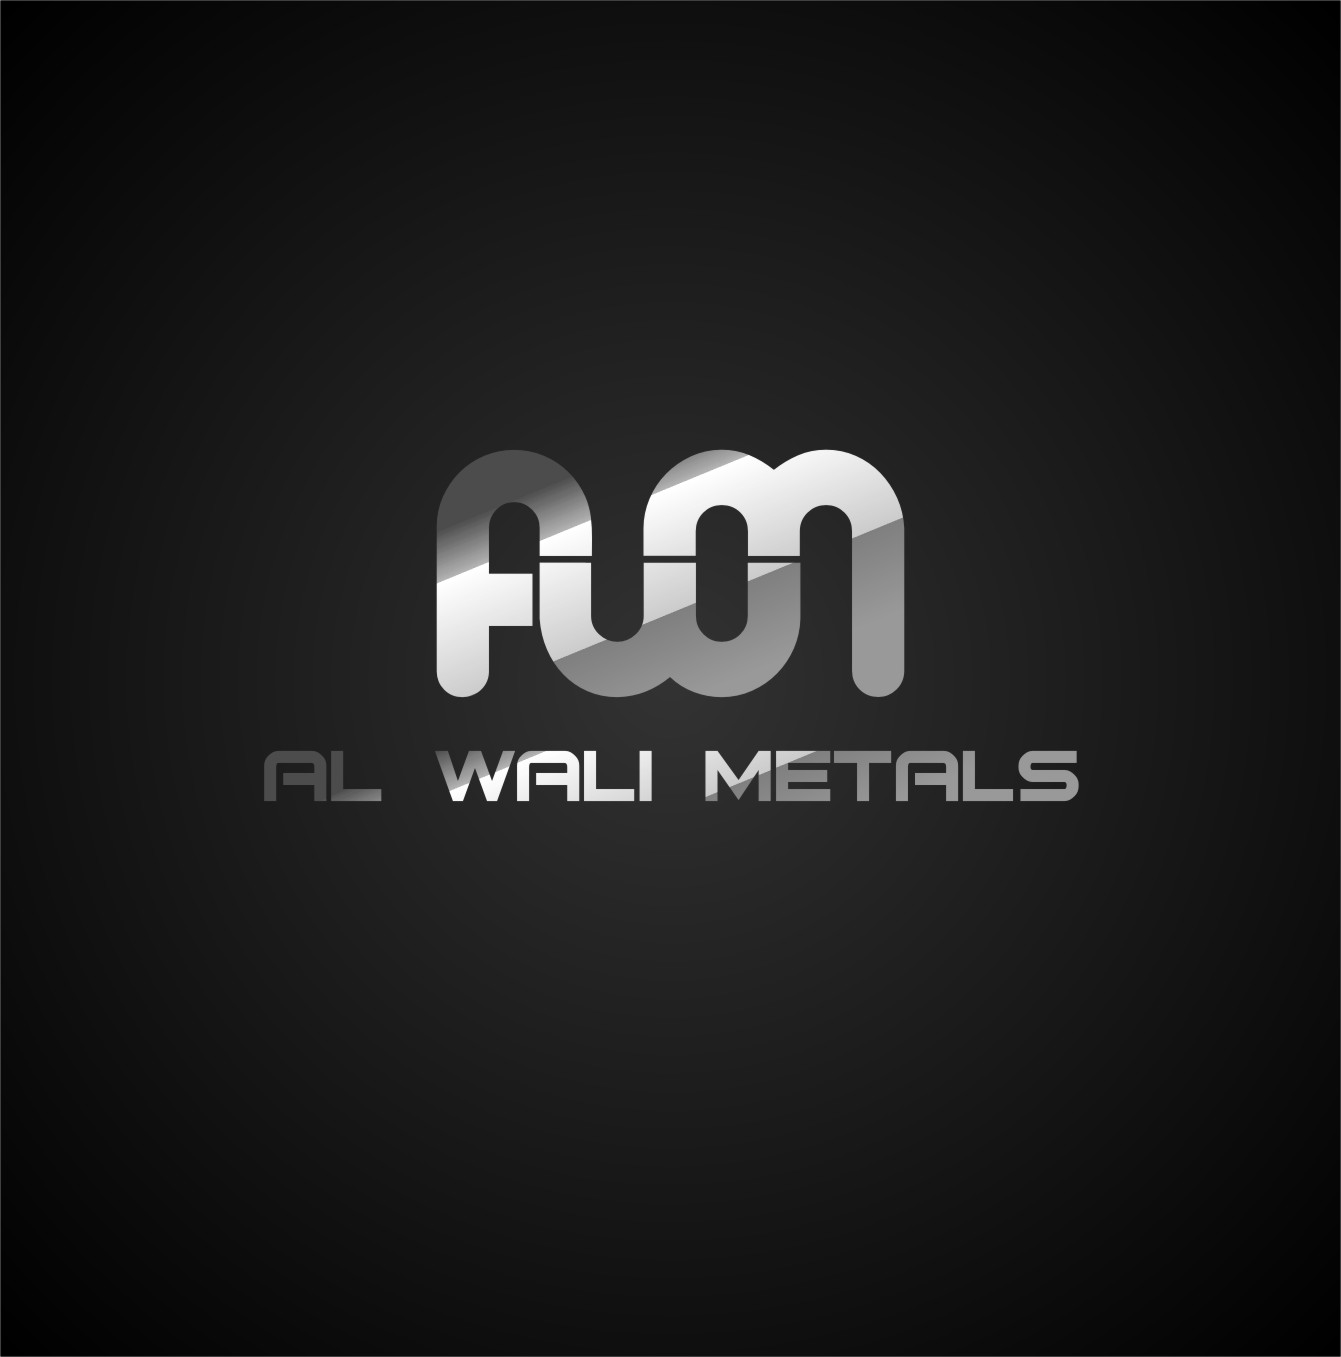 Logo Design by Ngepet_art - Entry No. 112 in the Logo Design Contest Inspiring Logo Design for Al Wali Metals.